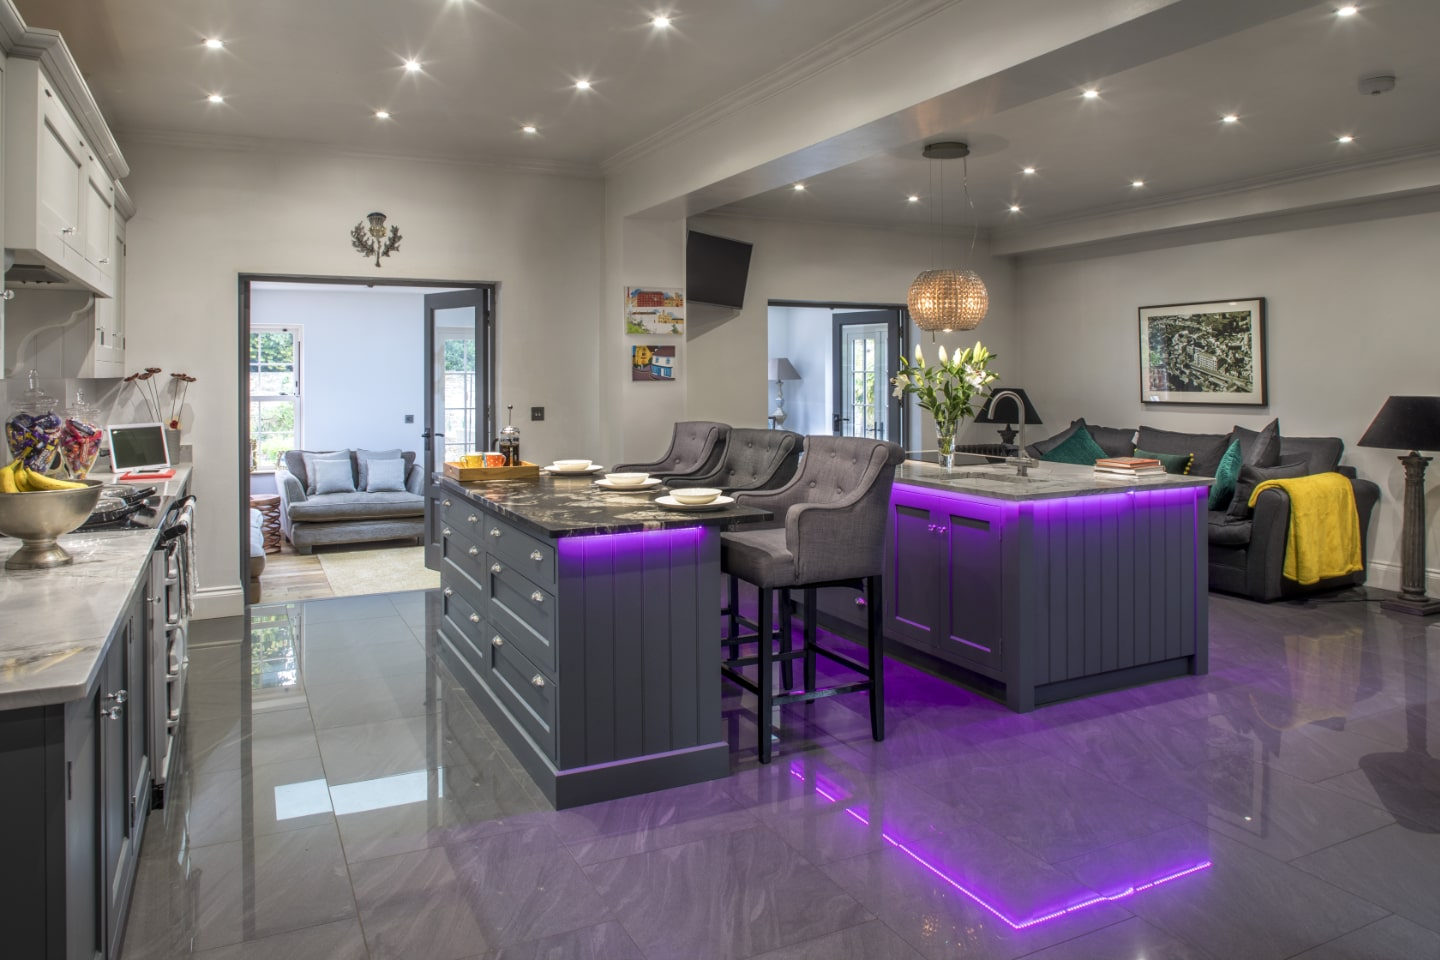 A bespoke kitchen with breakfast bar and purple LED lighting underneath.